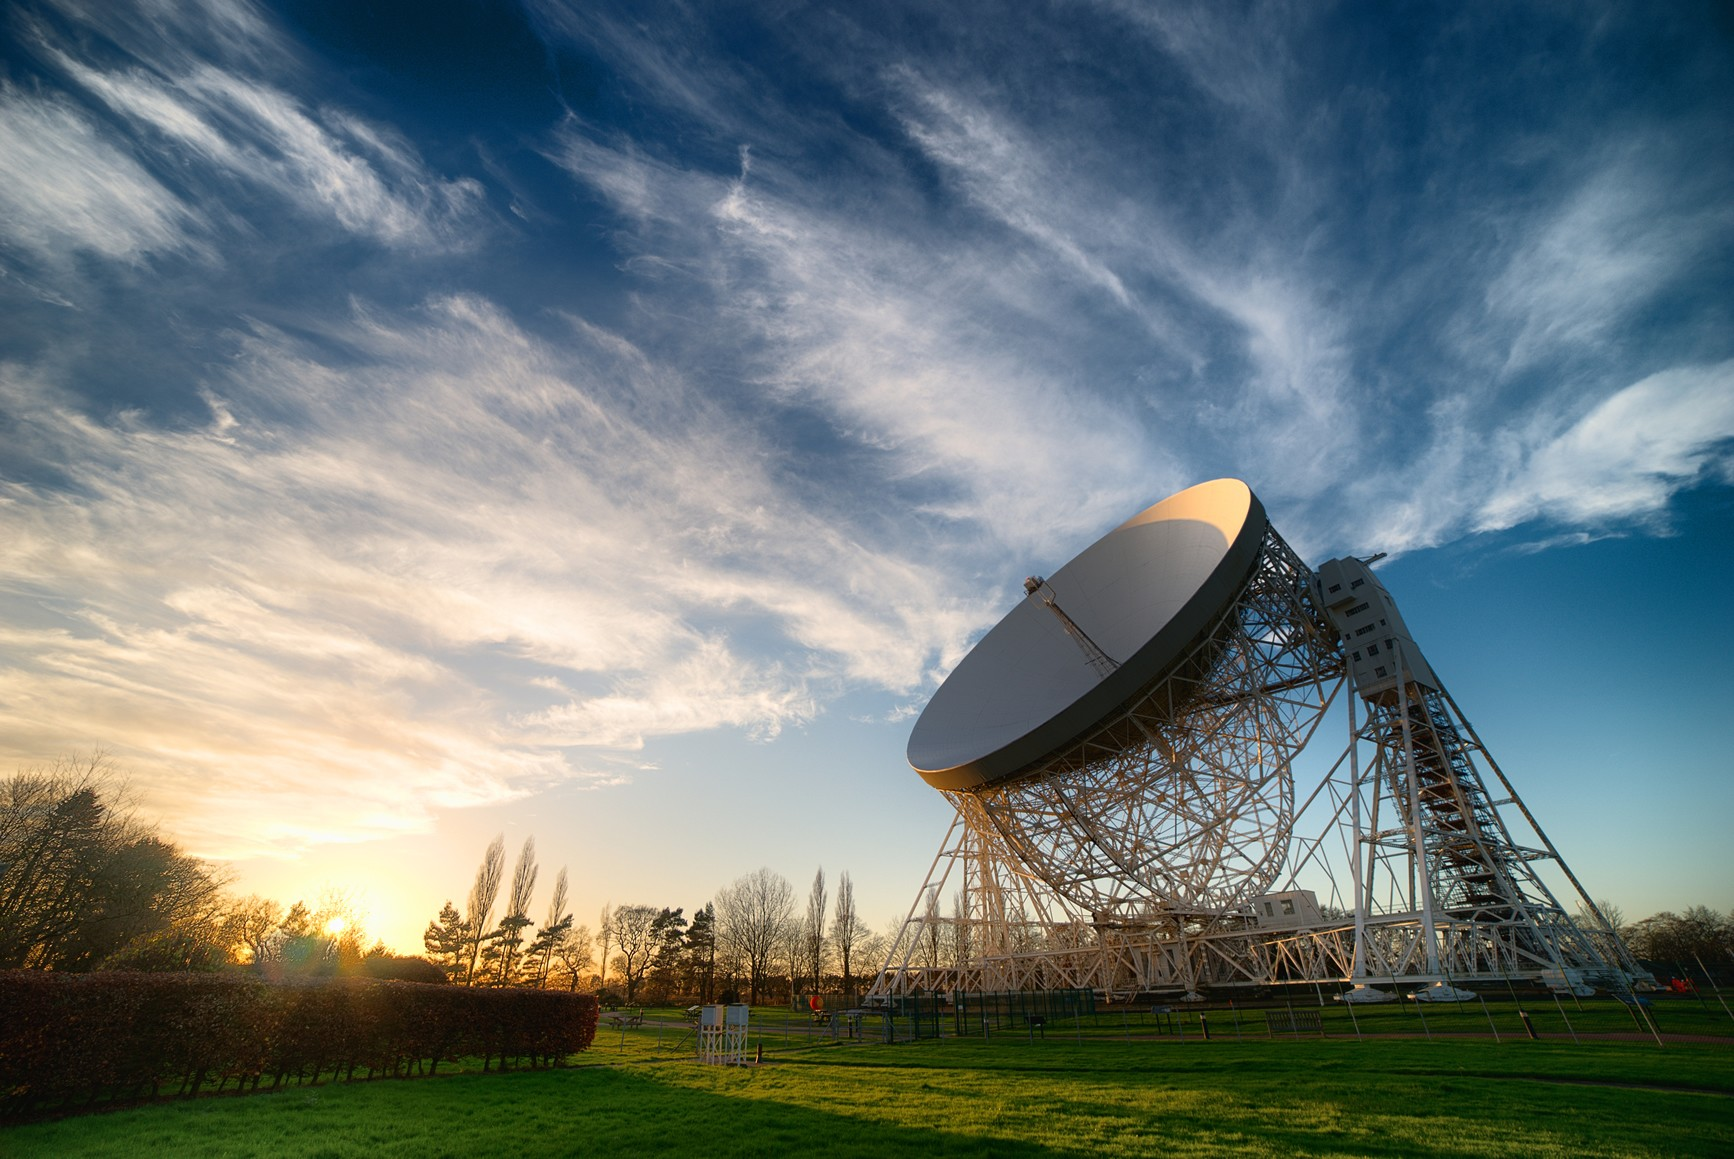 Lovell Telescope - Anthony Holloway